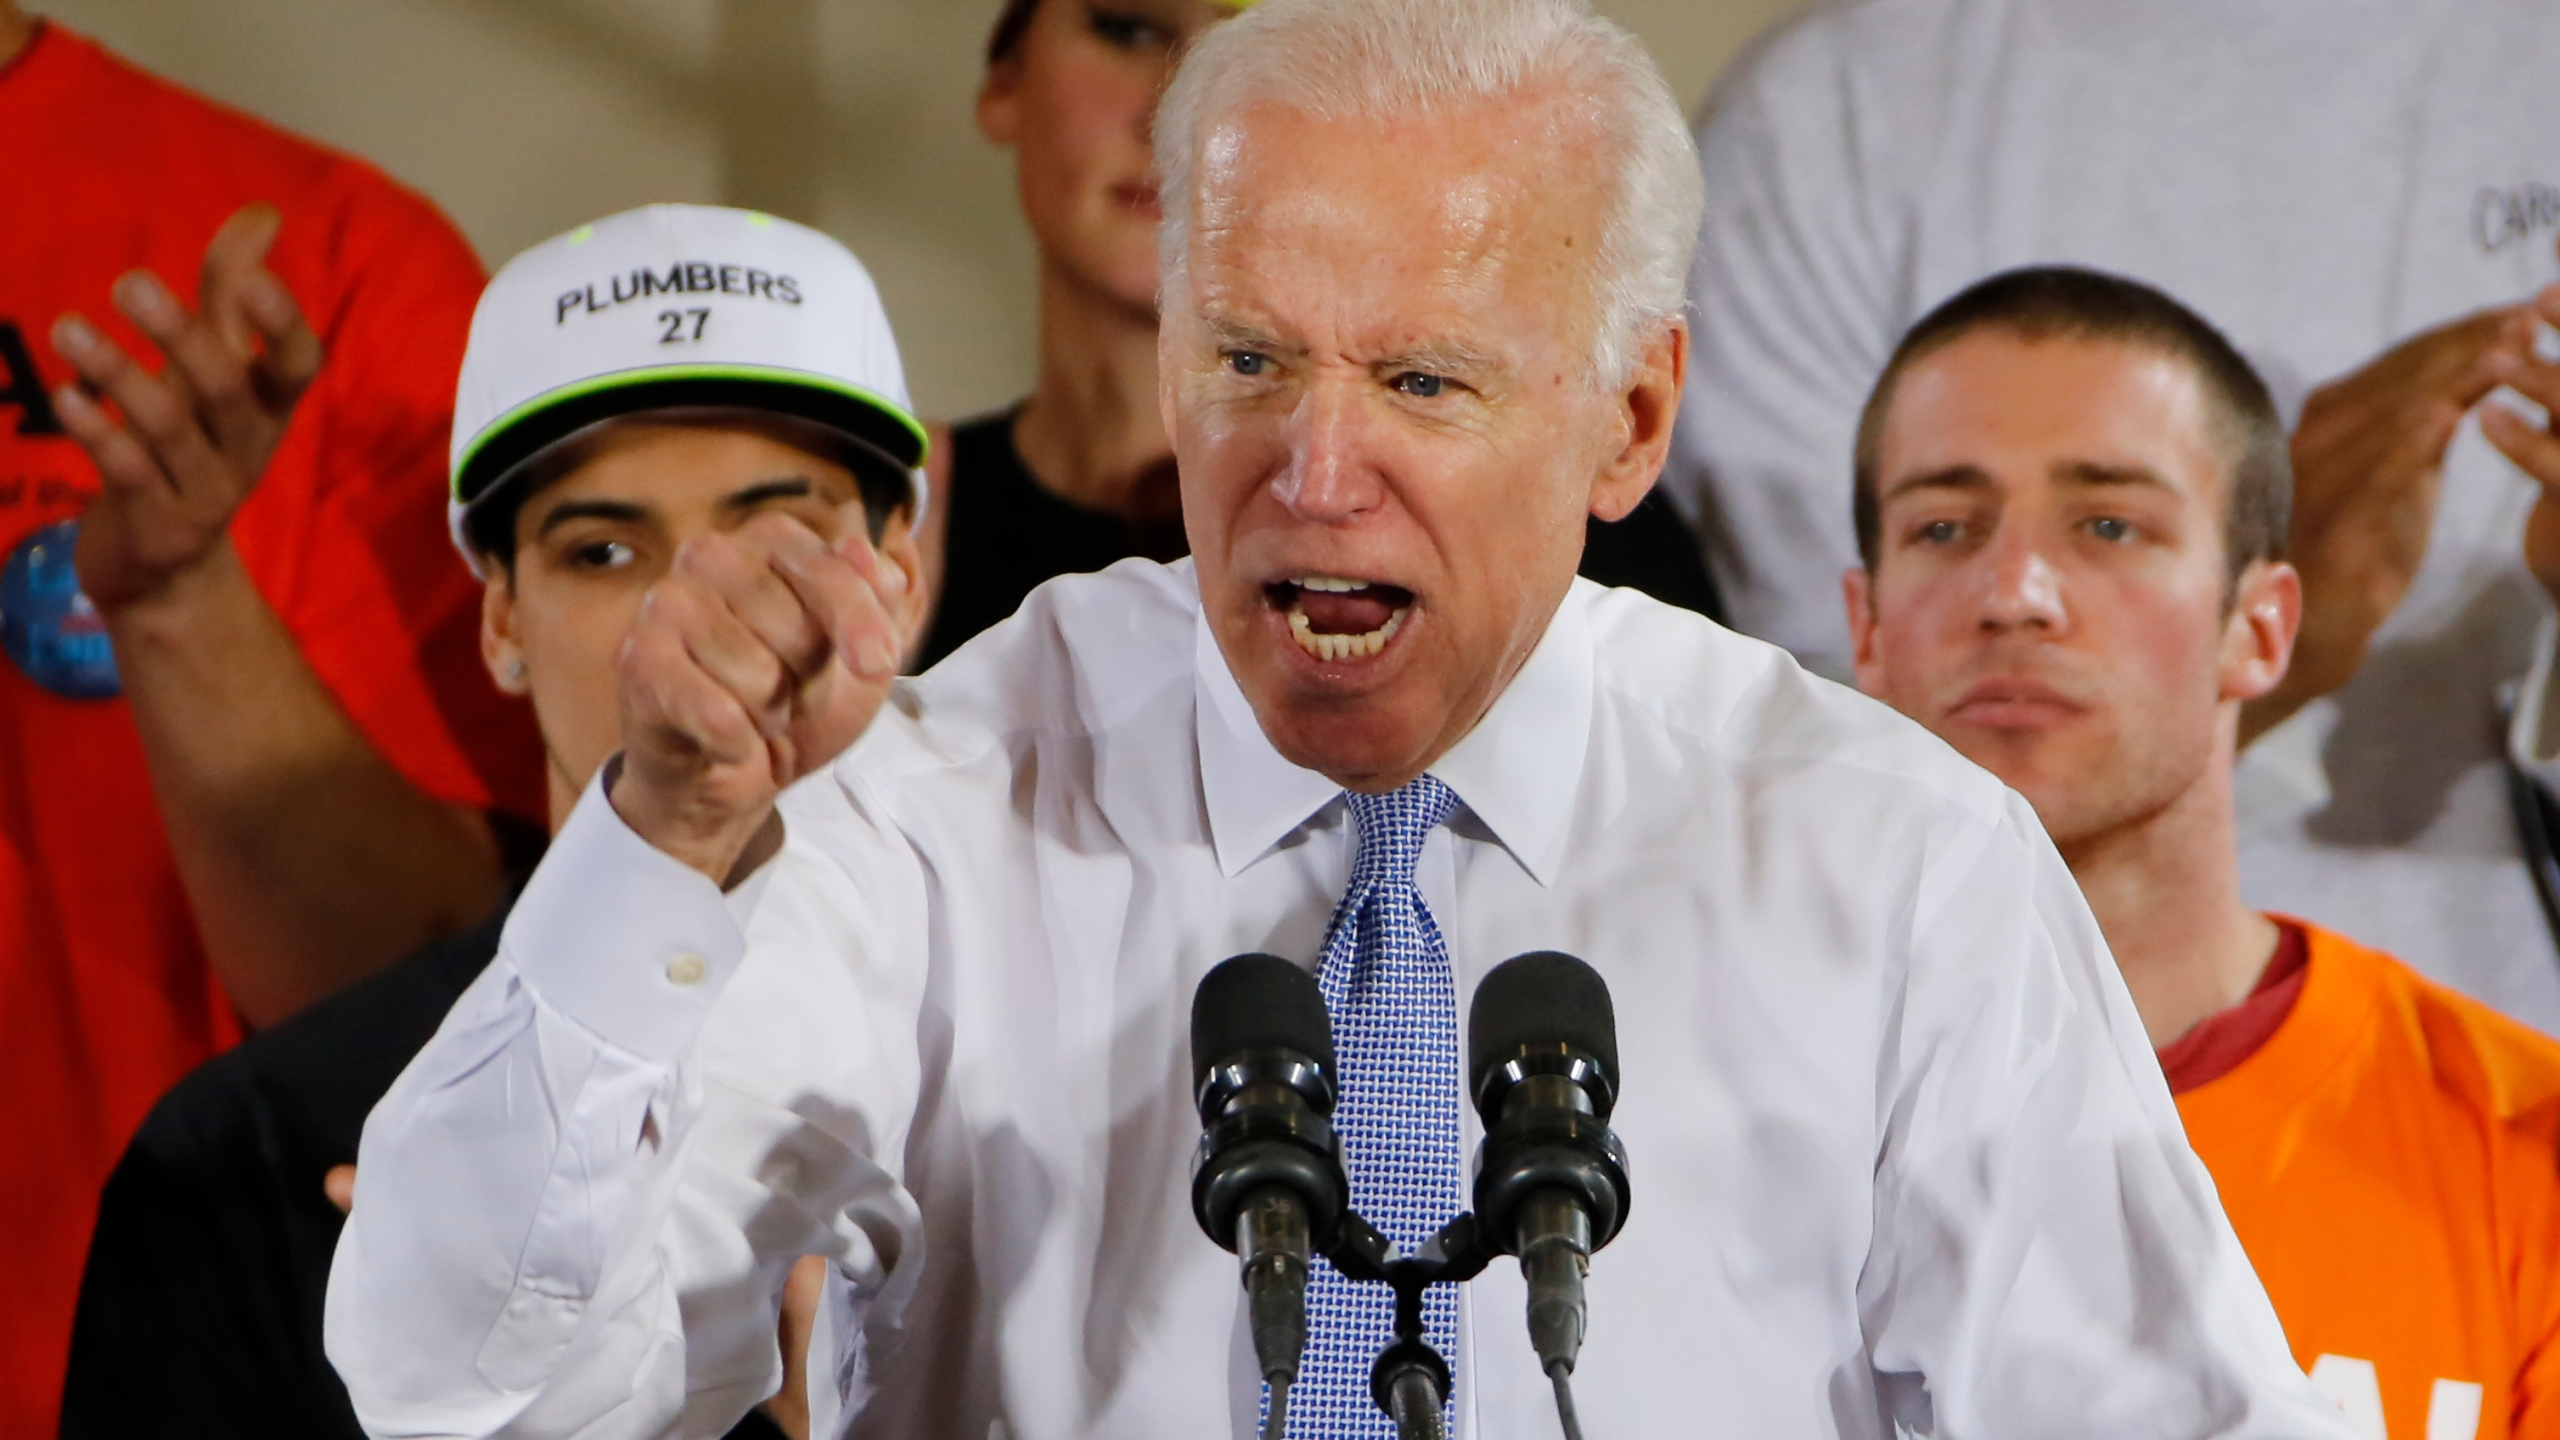 Election_2020_Joe_Biden_Pennsylvania_59989-159532.jpg63189674